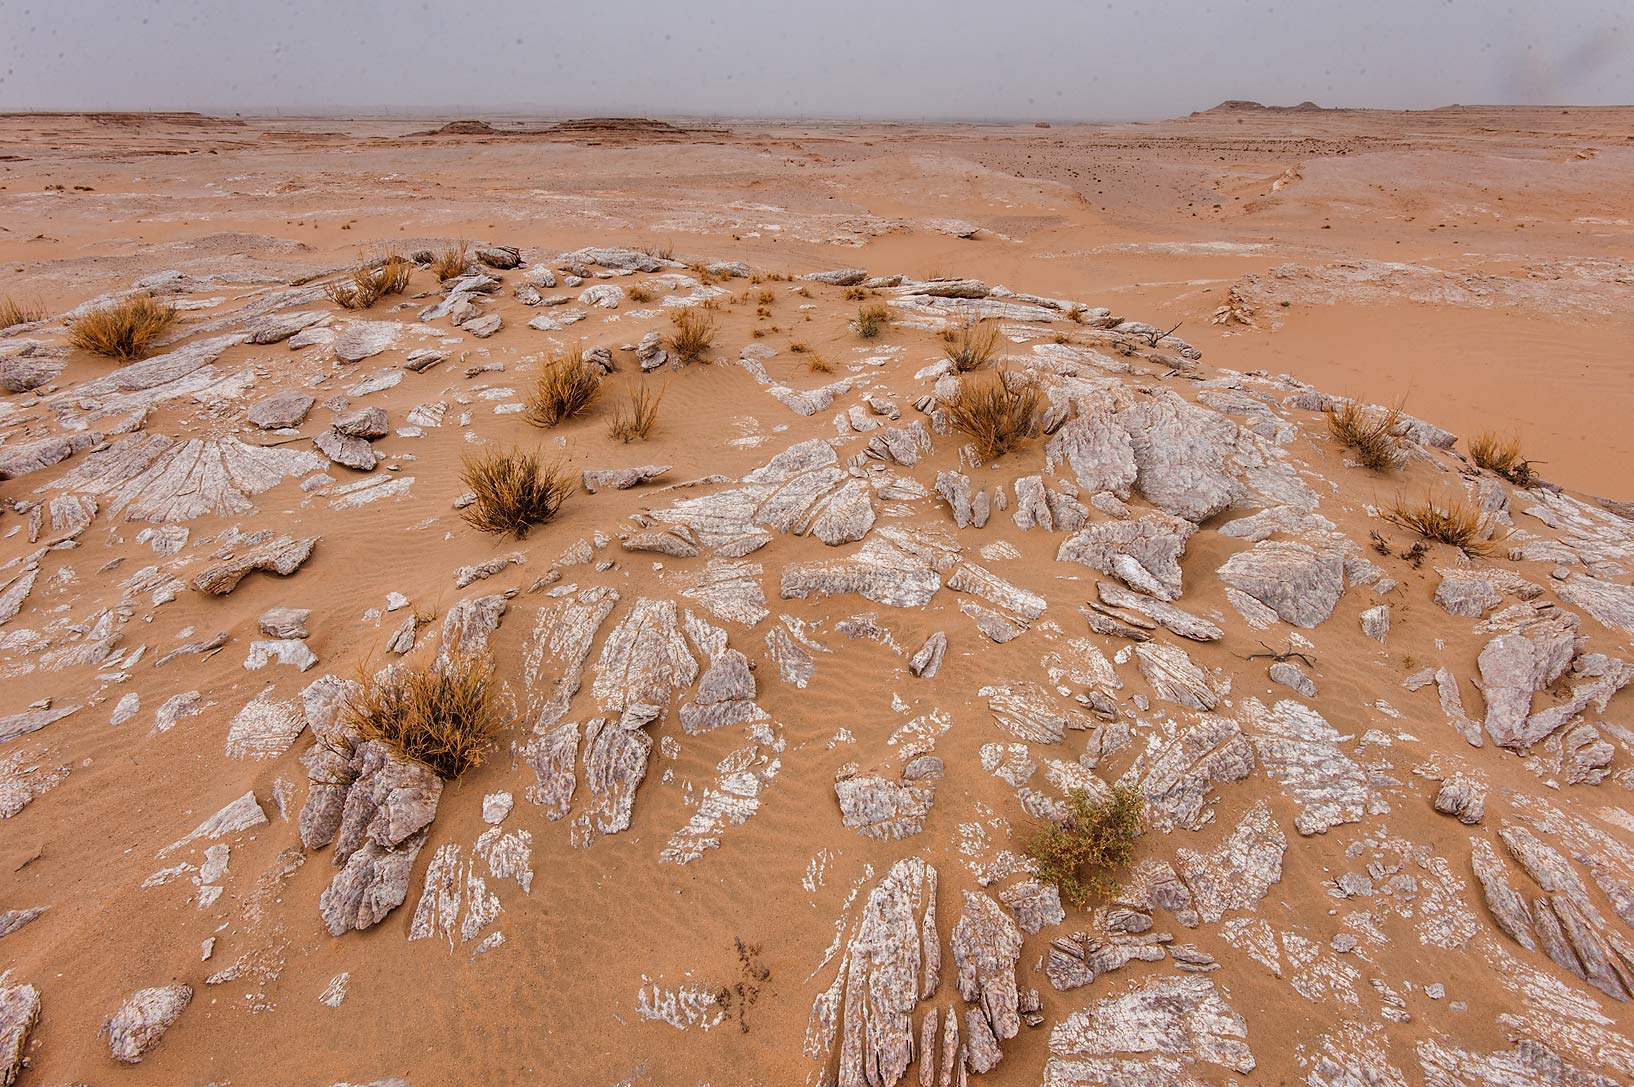 Slabs of gypsum crystals (selenite) in area of...near Salwa Rd. in southern Qatar